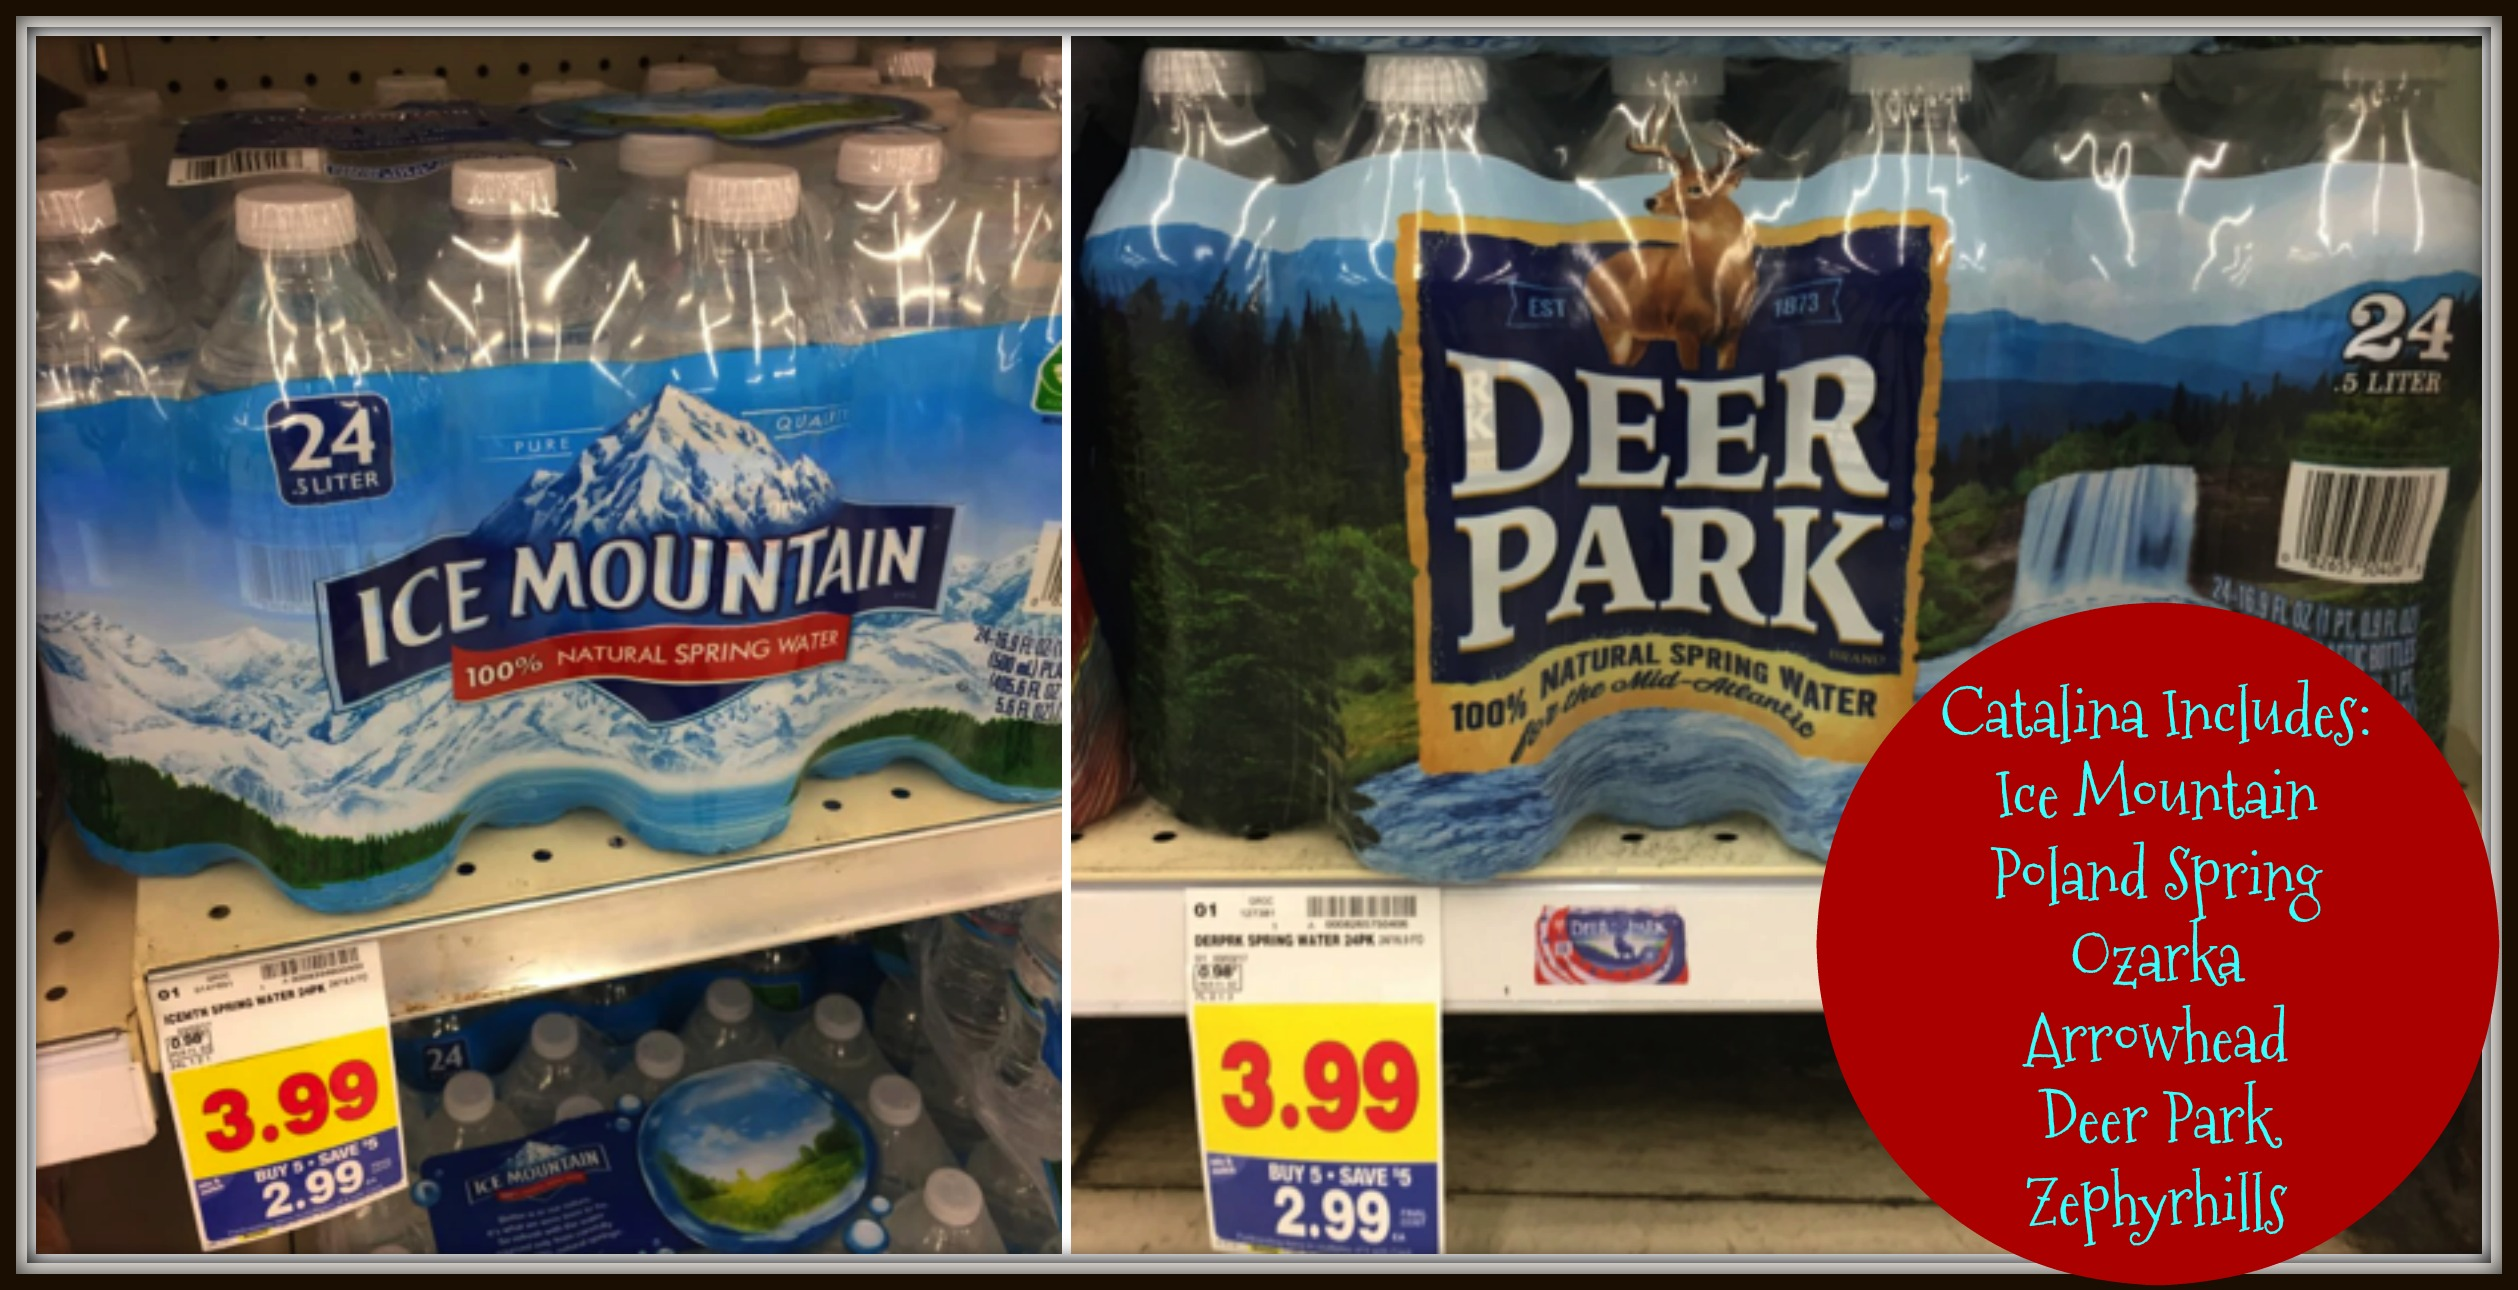 deer park ice mountain Image